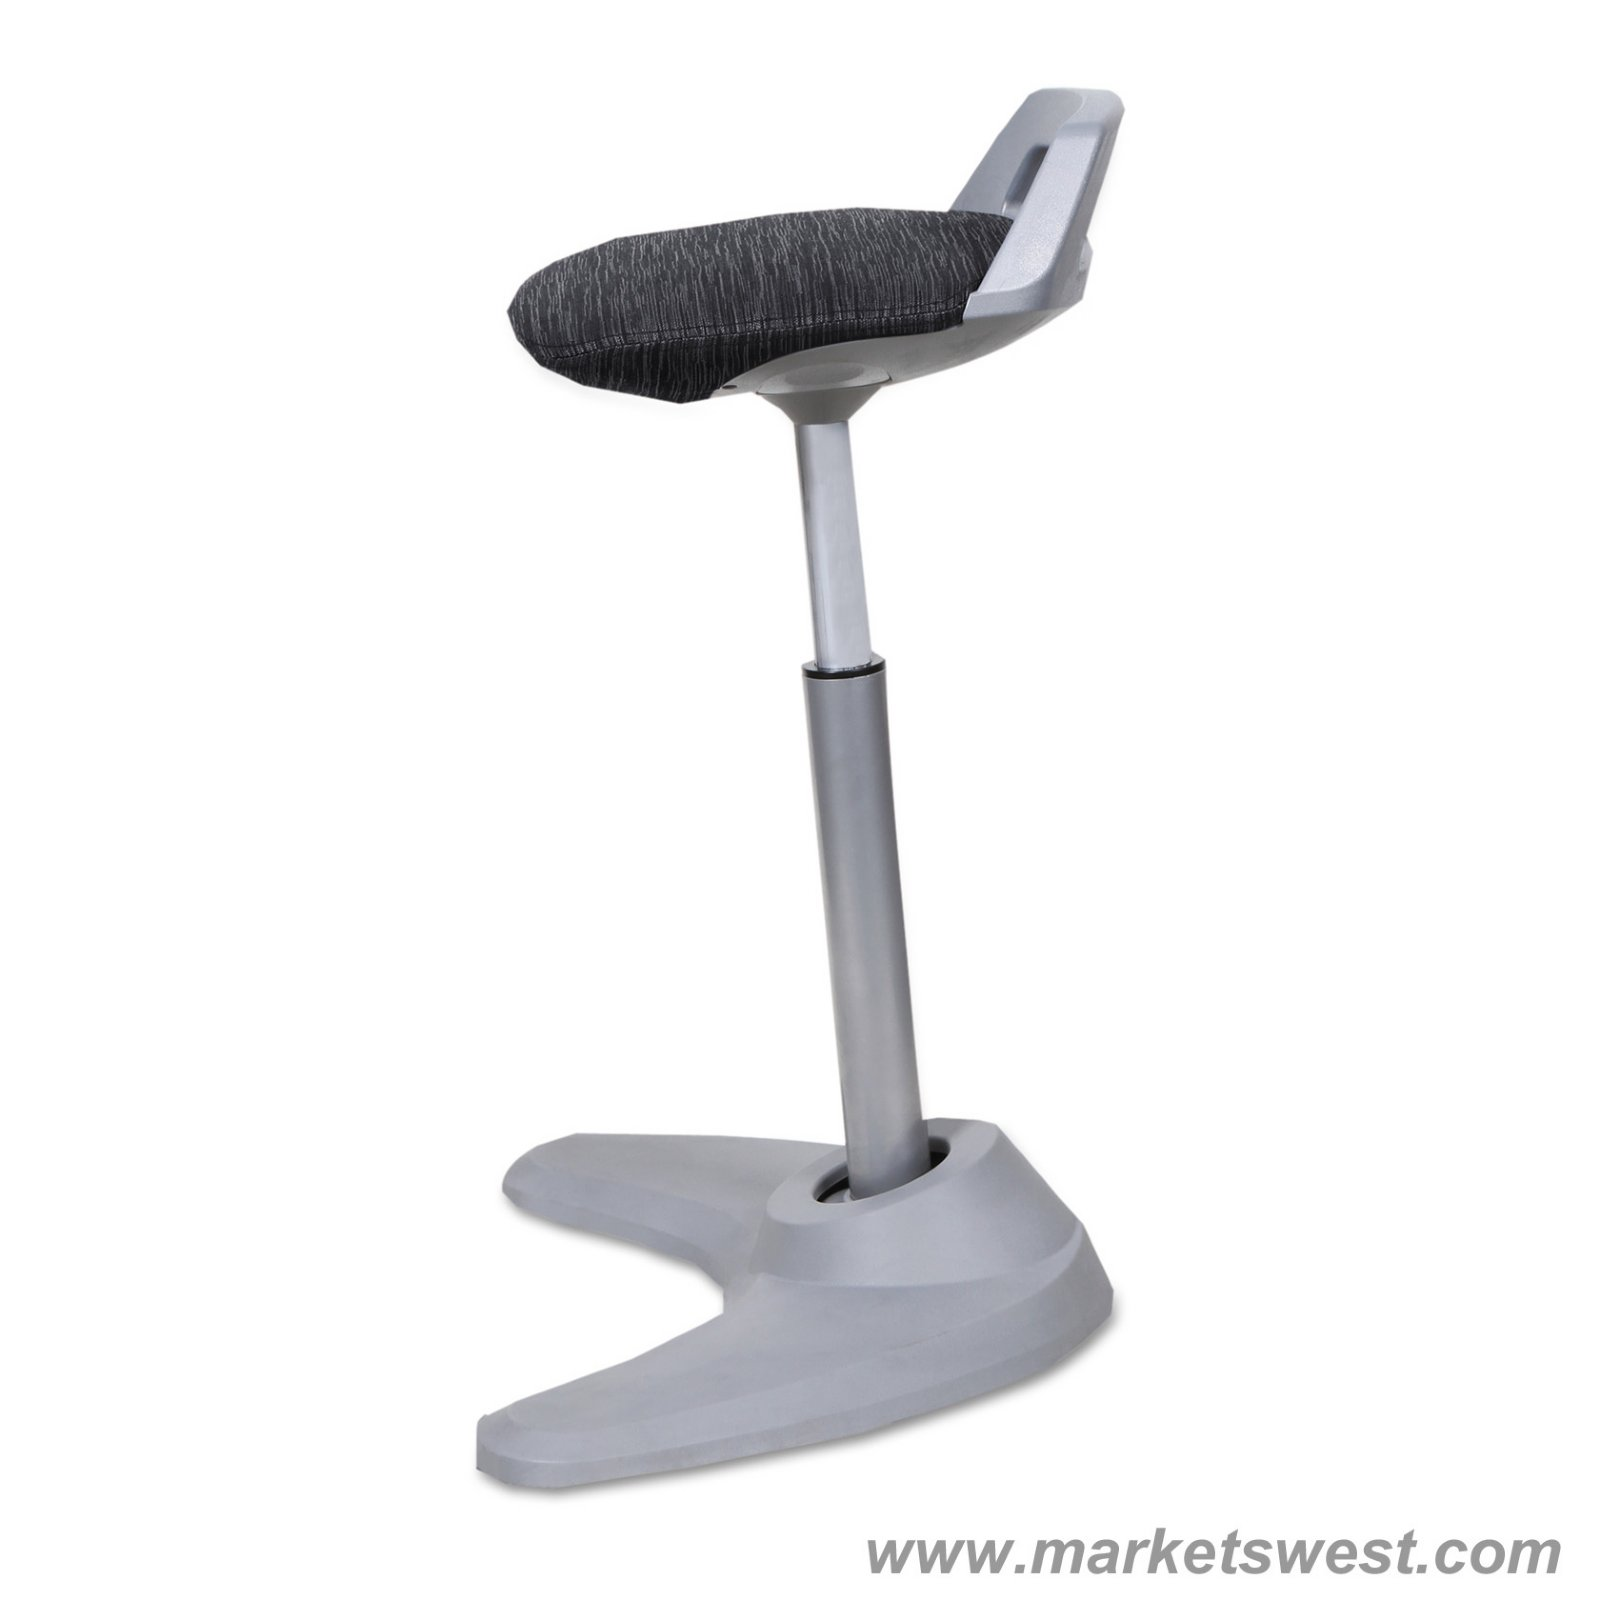 health healthpostures move stand collections chair stance seat postures active products sit seating with extension grande stool